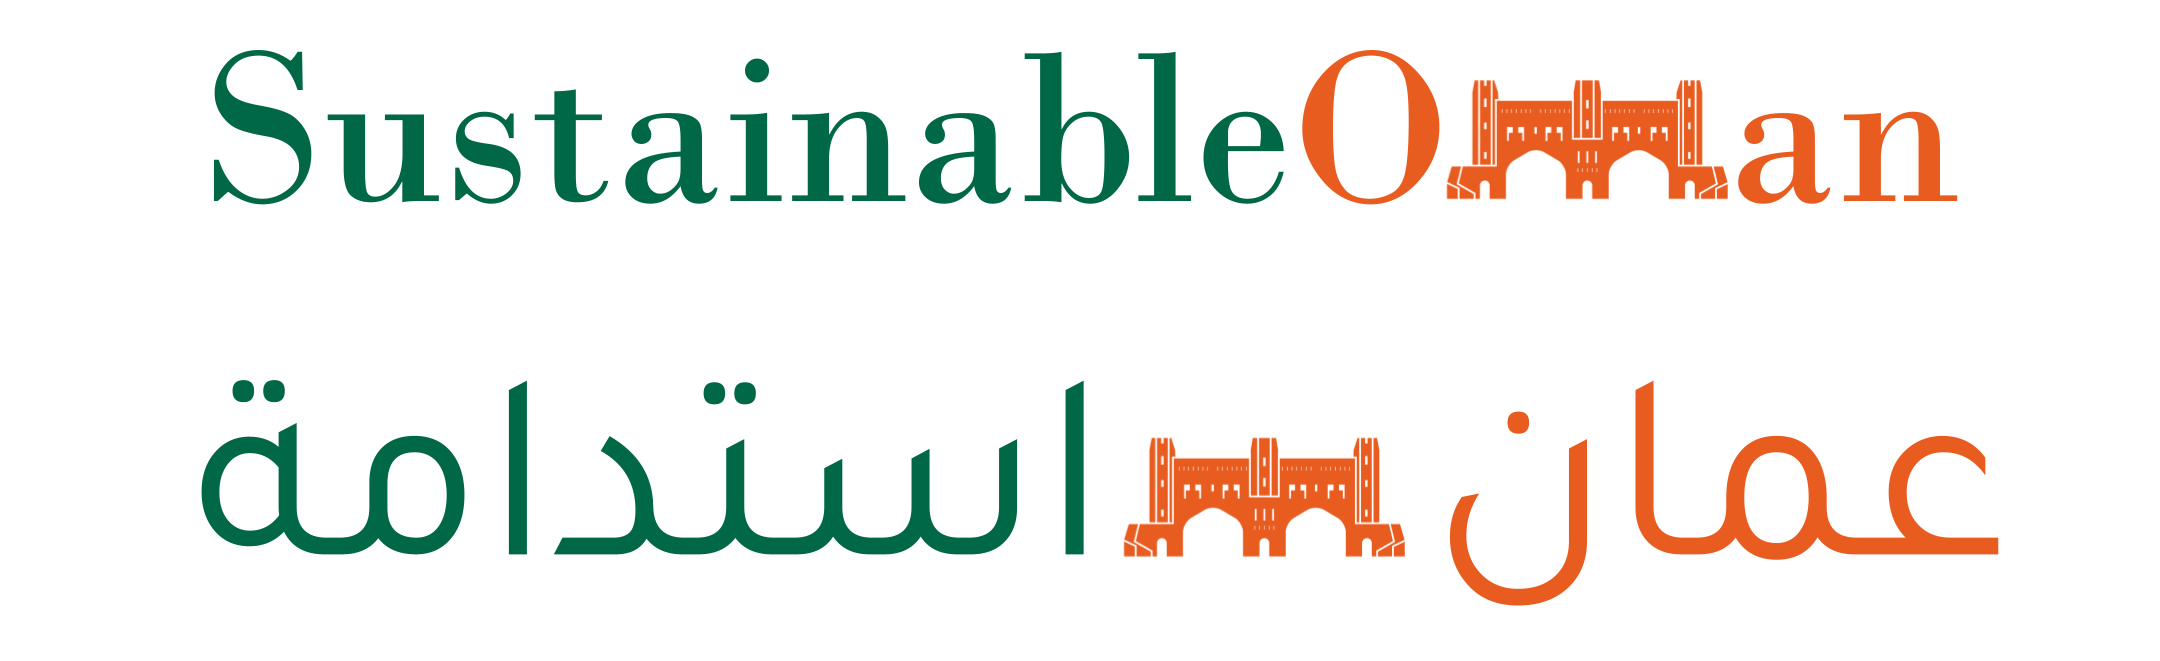 SustainableOman